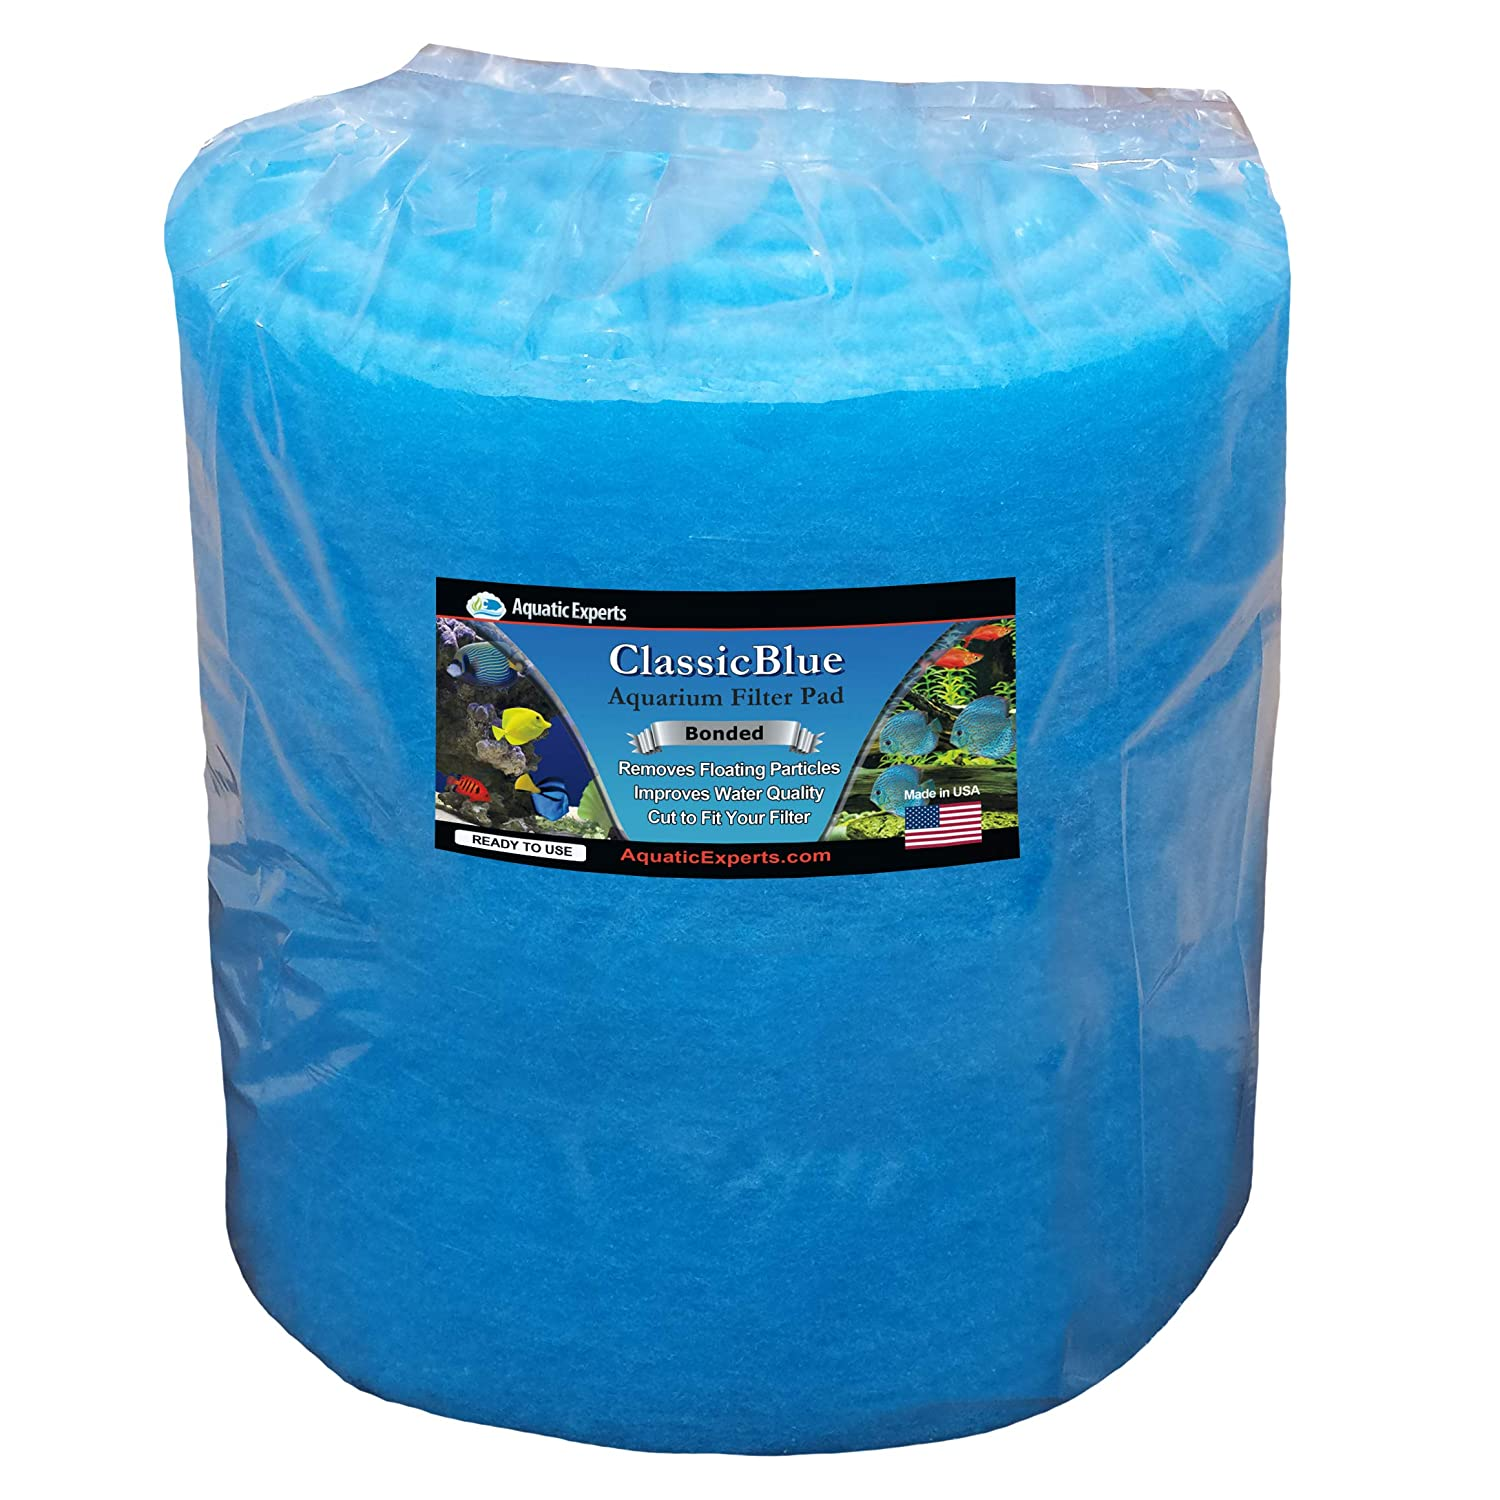 12  by 12 Feet by 3 4  Thick Aquatic Experts Classic Bonded Aquarium Filter Pad 12 Inches by 72 Inches by .75 Inch  bluee and White Aquarium Filter Media Roll Bulk Can Be Cut to Fit Most Filters, Made in USA